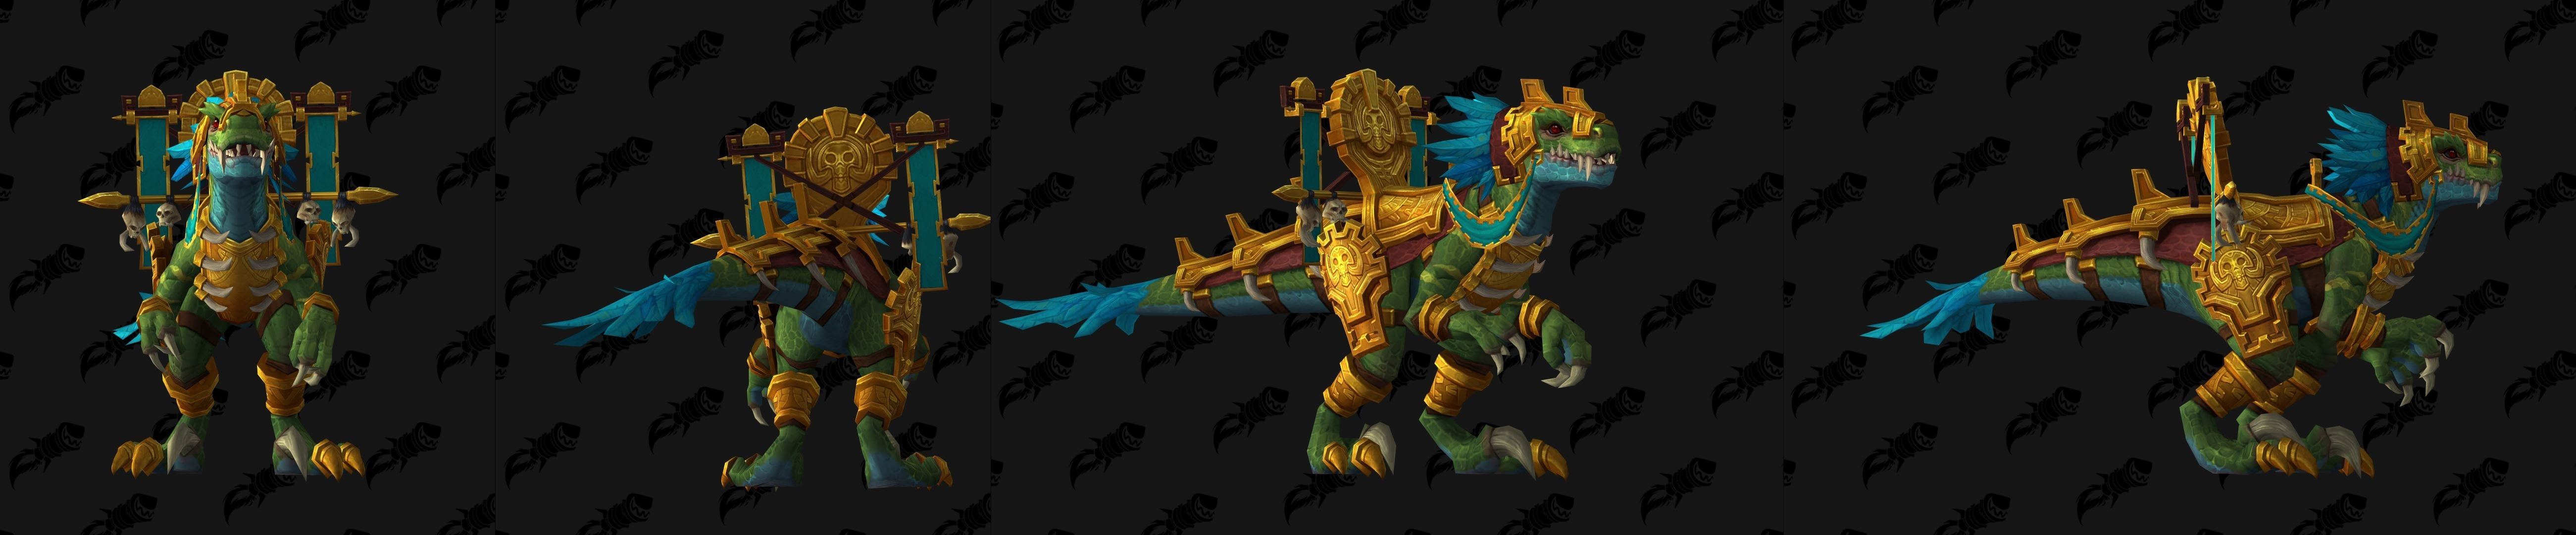 Battle For Azeroth Collector S Edition Unboxing And Digital Deluxe Giveaway Wowhead News